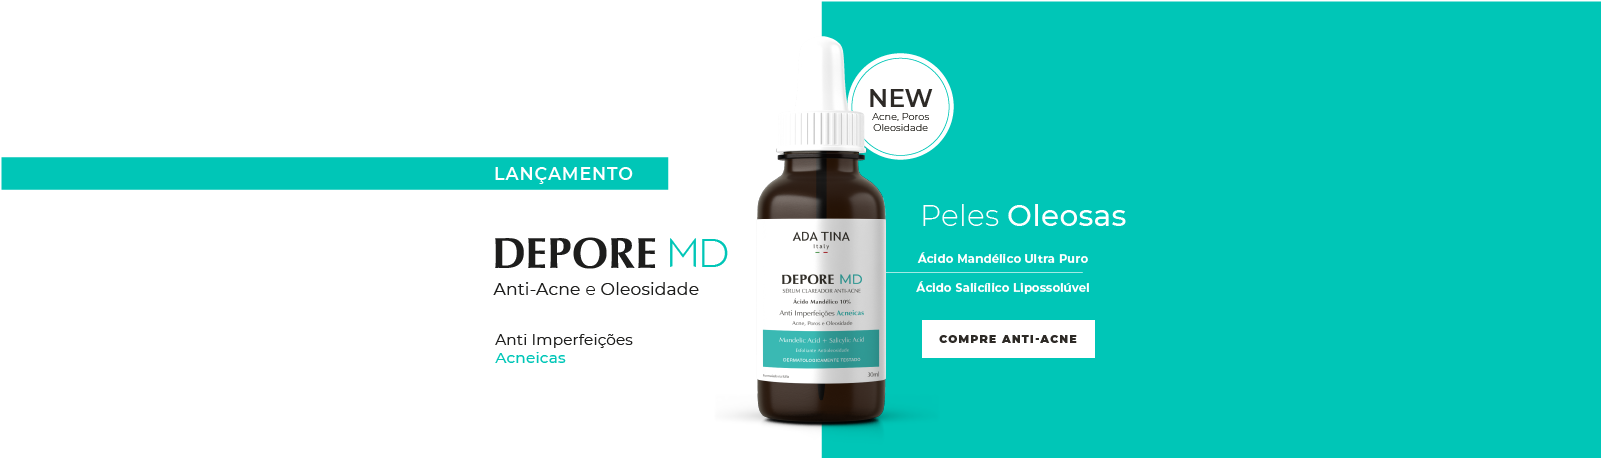 0 - DEPORE MD MOBILE